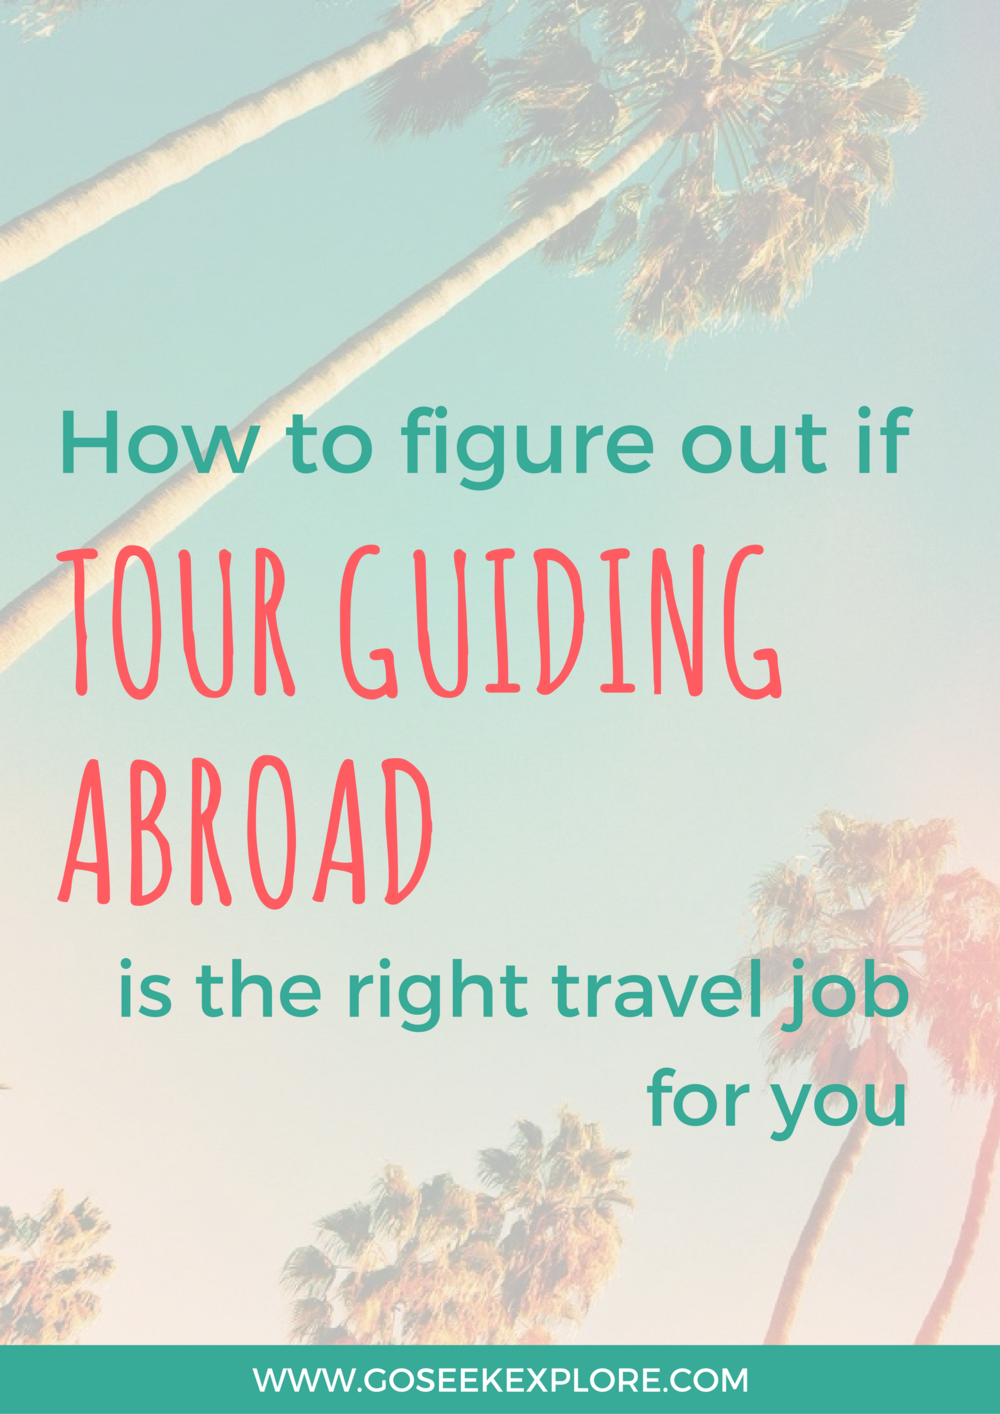 Considering being a tour guide abroad so you can travel for your job? This post goes over what you should expect as an international tour guide and some pros and cons to see if this job could be the right fit for you!